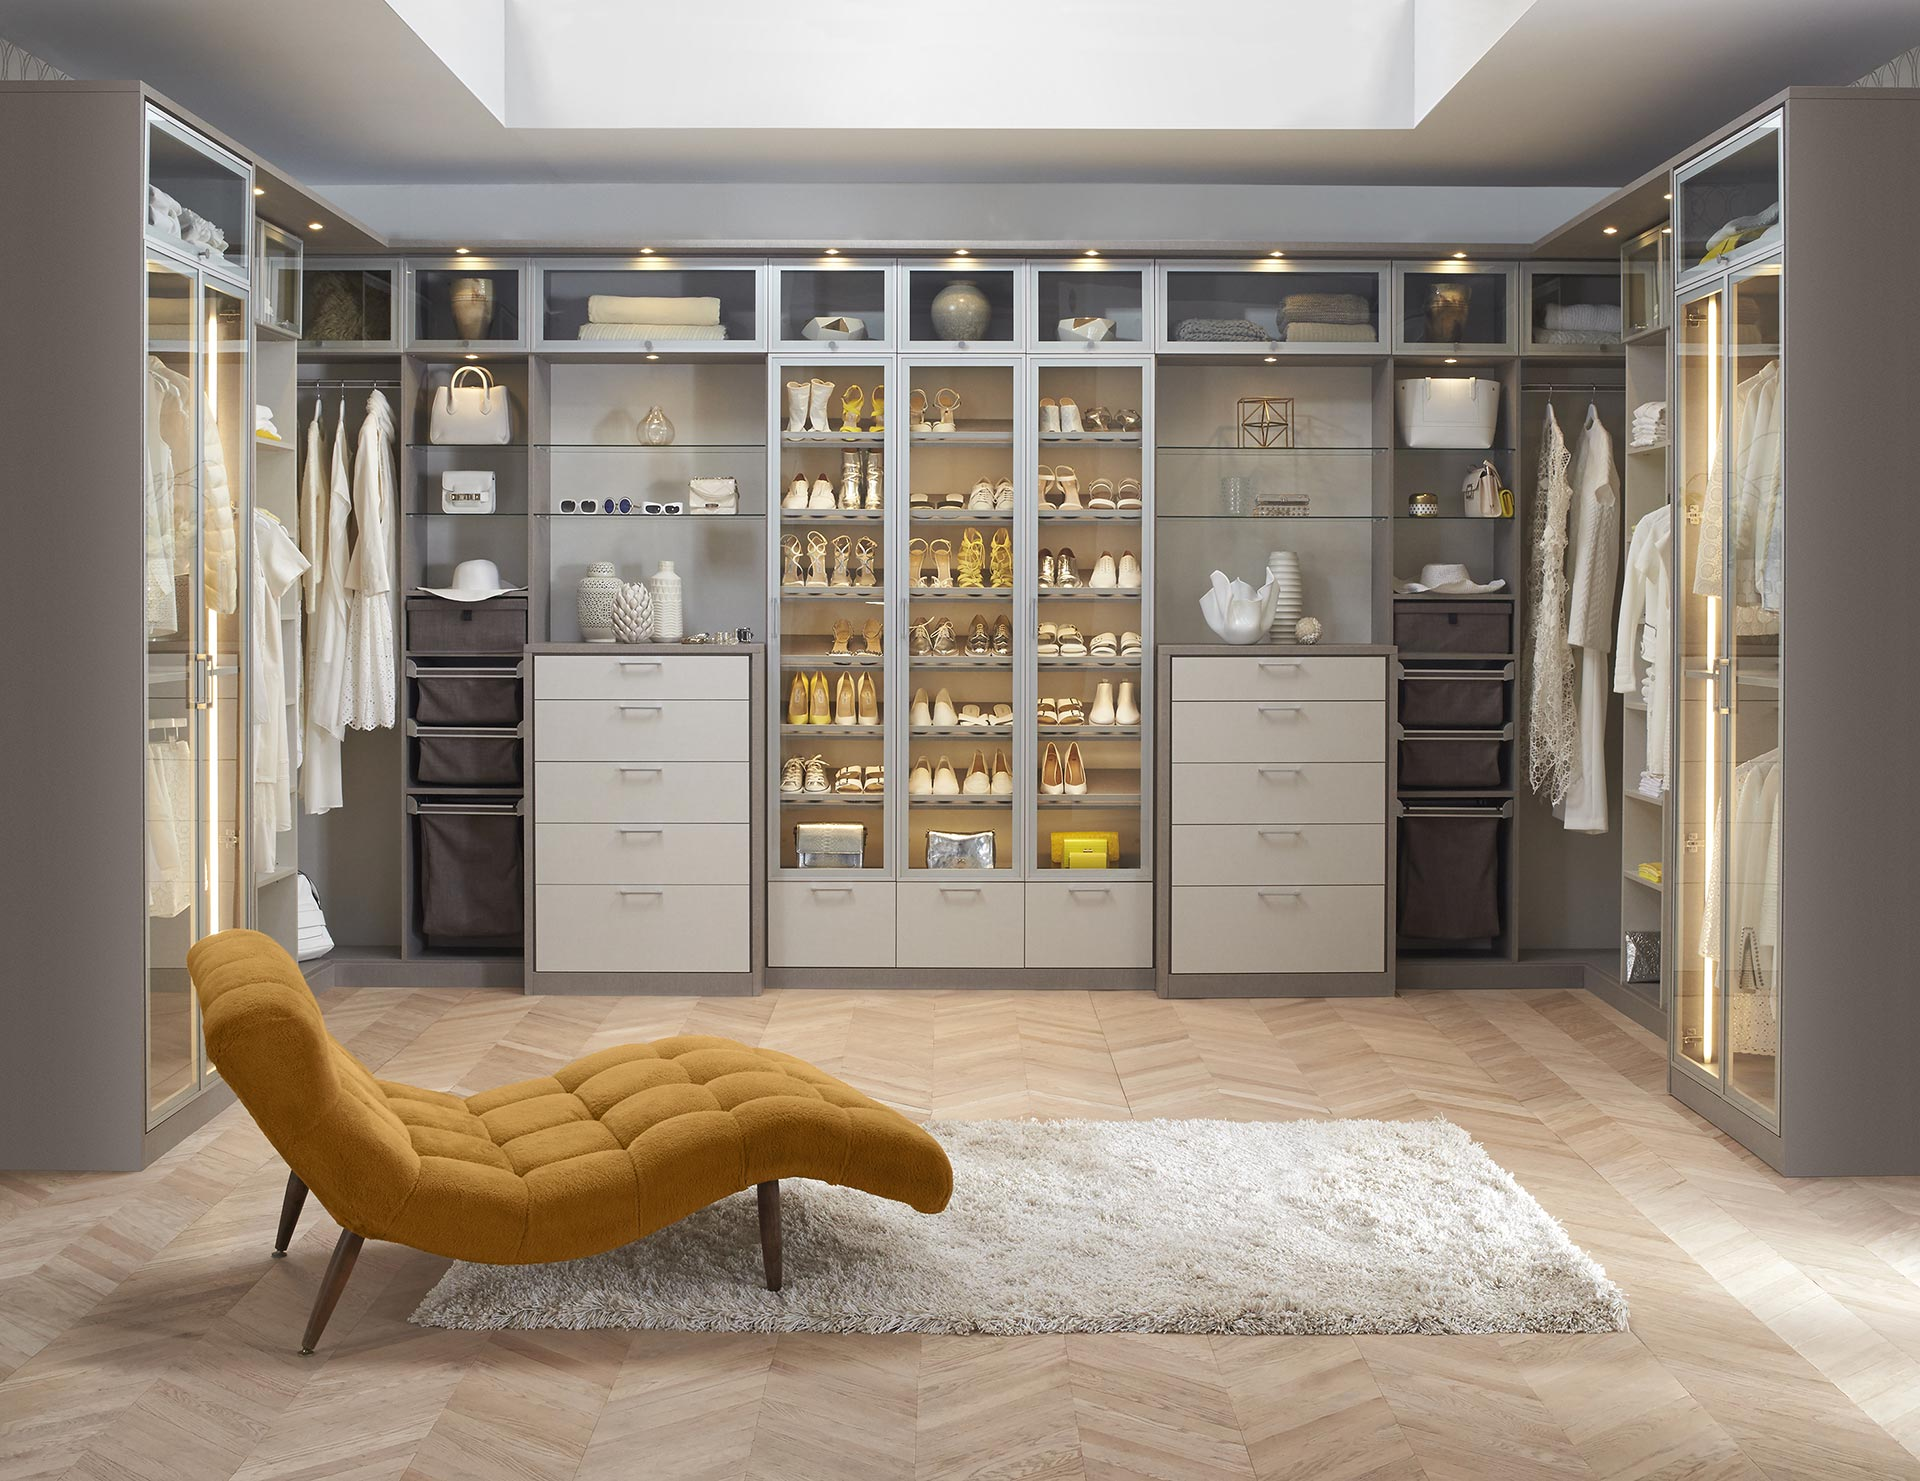 Walk in closet systems walk in closet design ideas - Walk in closet ideas ...